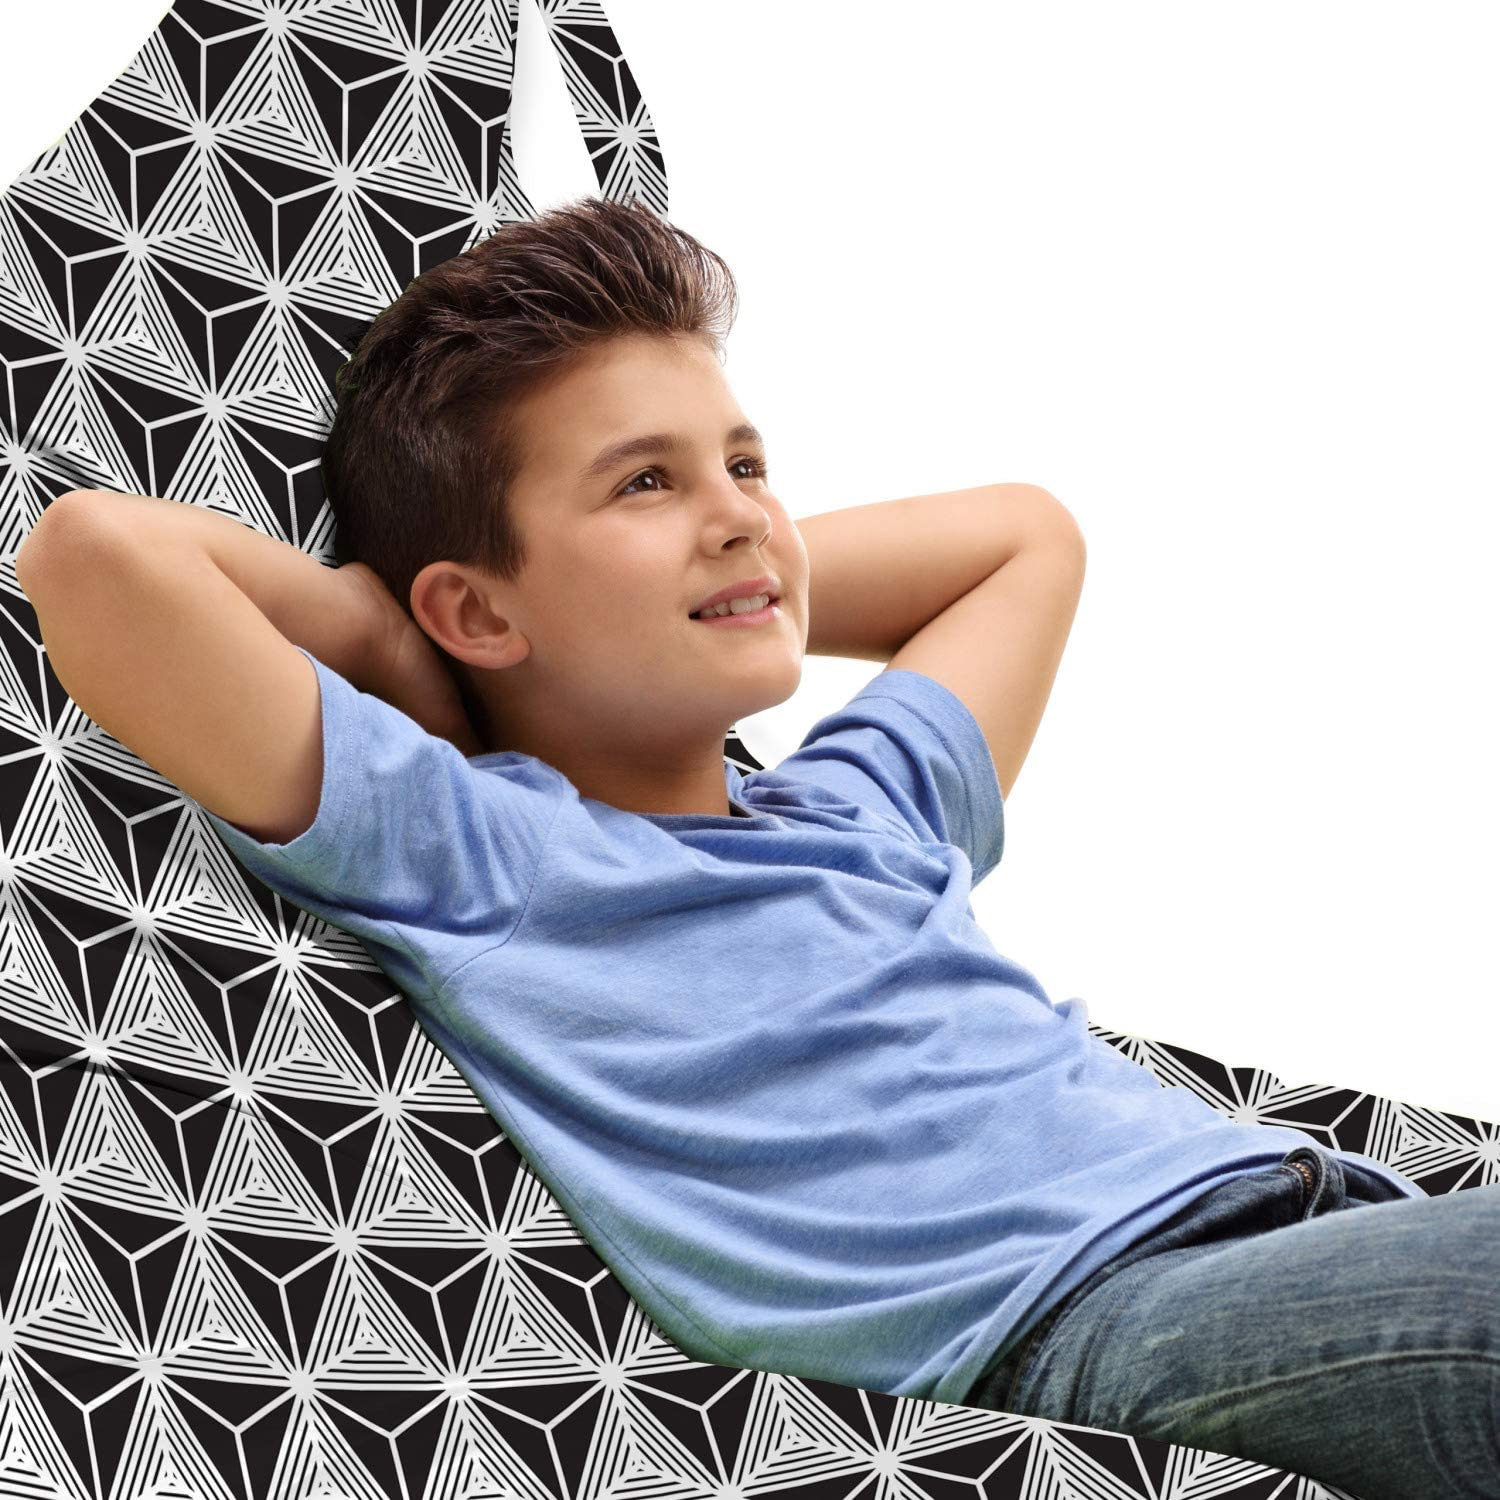 Ambesonne Geometric Lounger Chair Bag Abstrac Grid High free shipping quality Contemporary